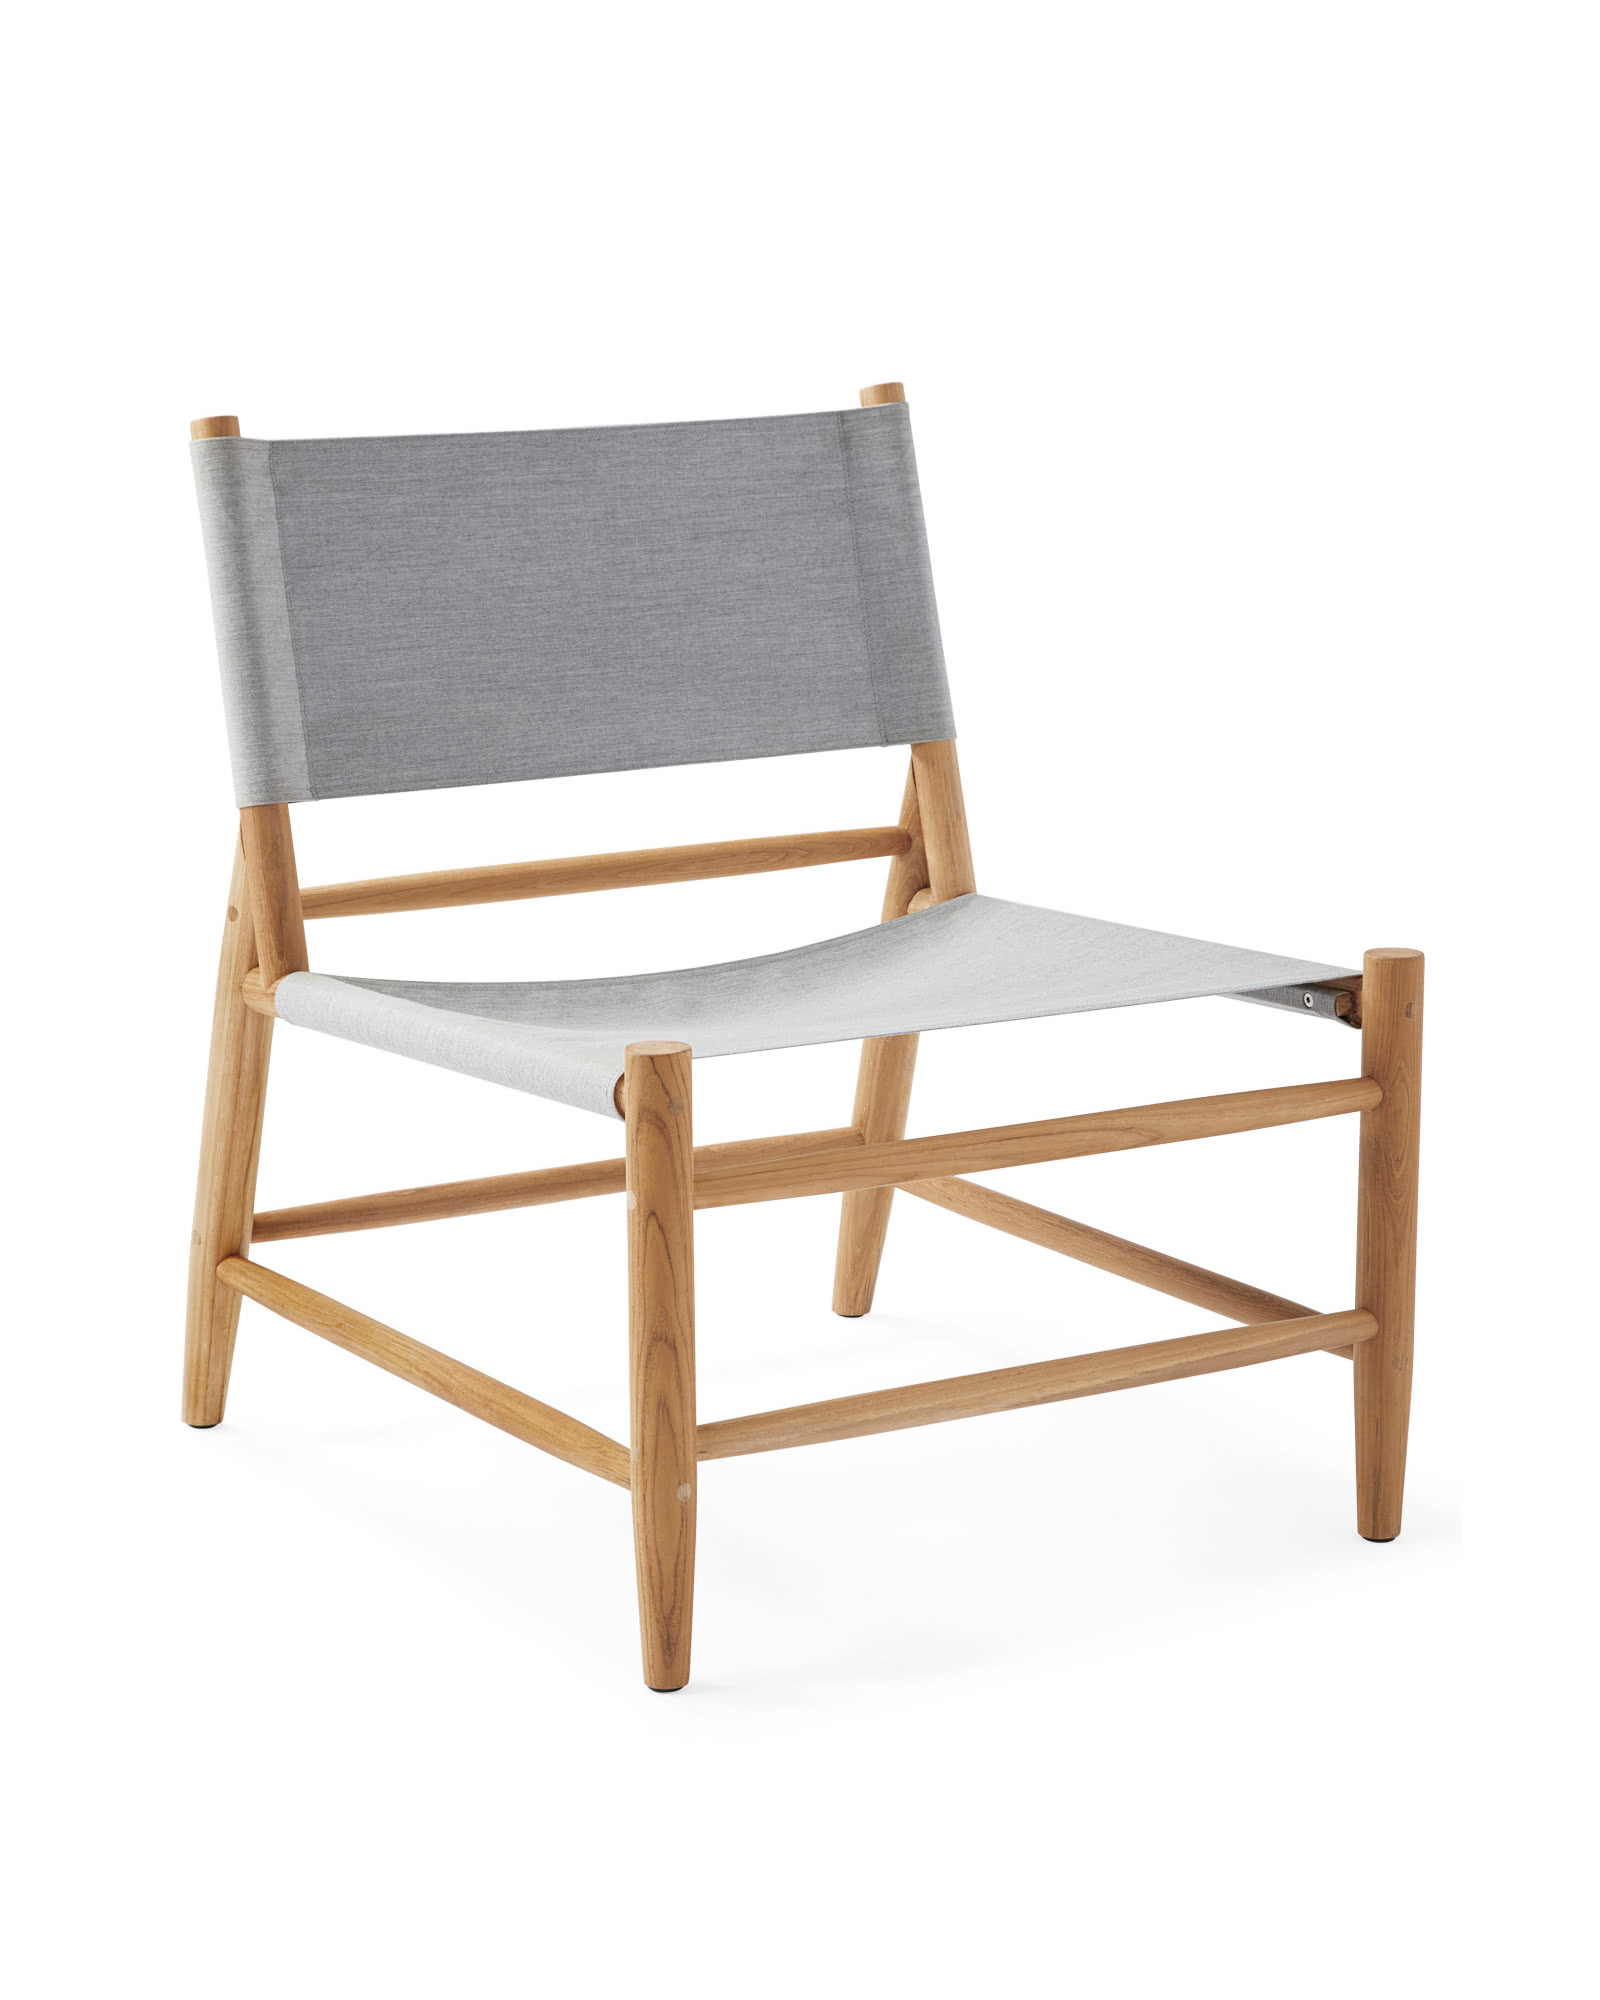 Pier Outdoor Lounge Chair,